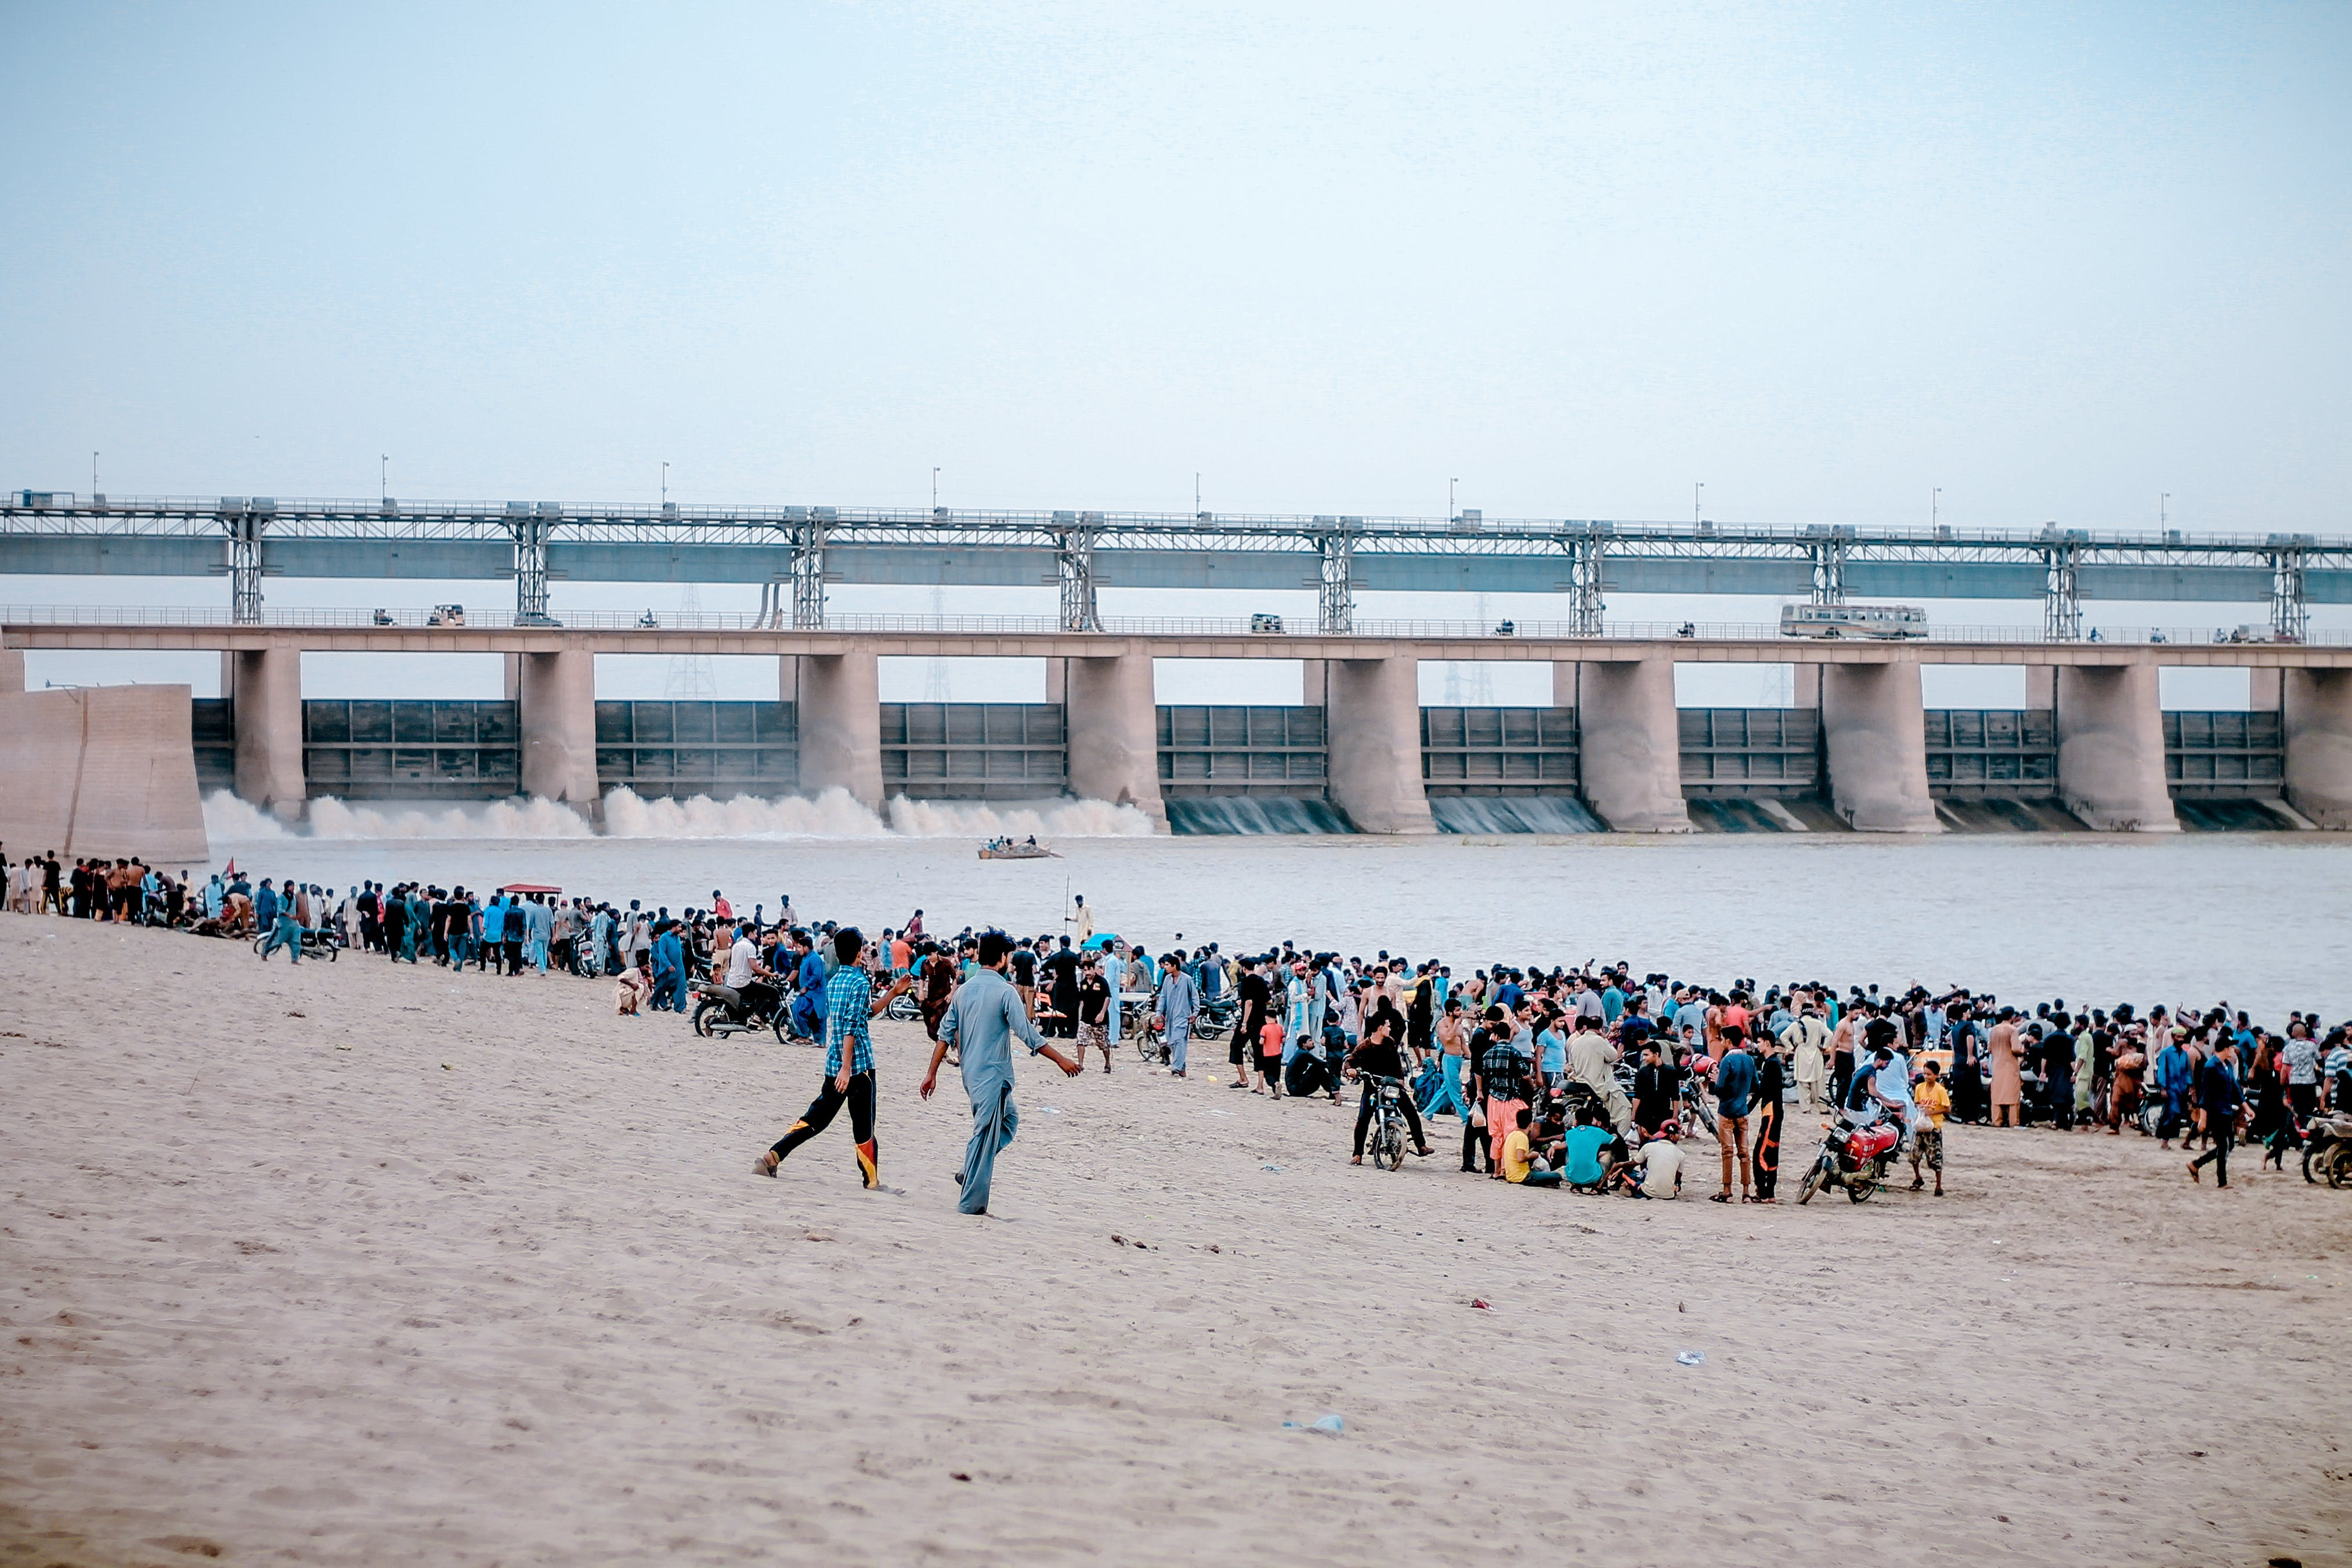 Photograph of a Crowd by the Water